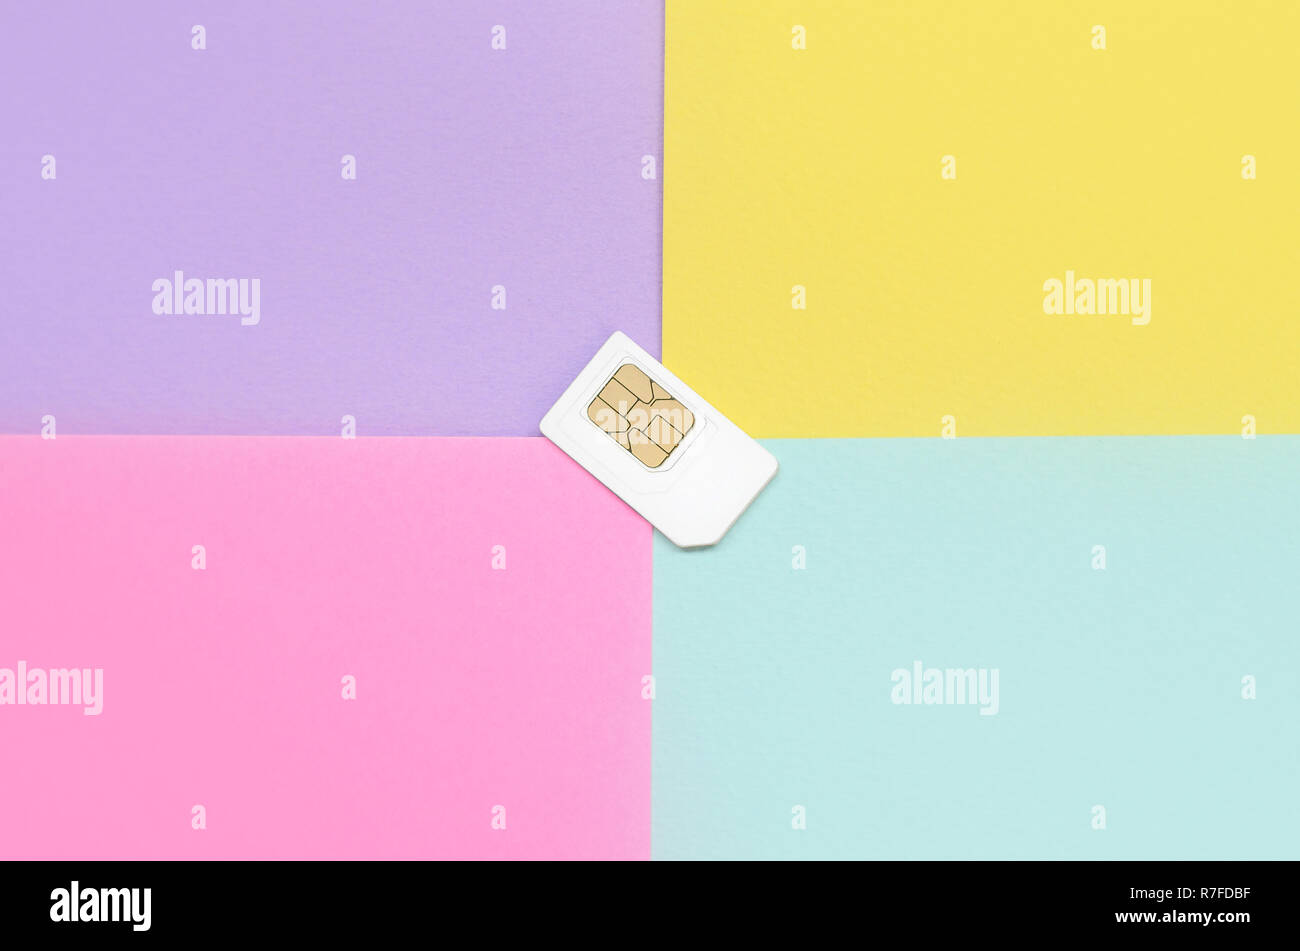 Subscriber identity module. New white SIM card on bright multicolor background. Minimal flat lay top view. Violet, pink, yellow and blue pastel colors - Stock Image